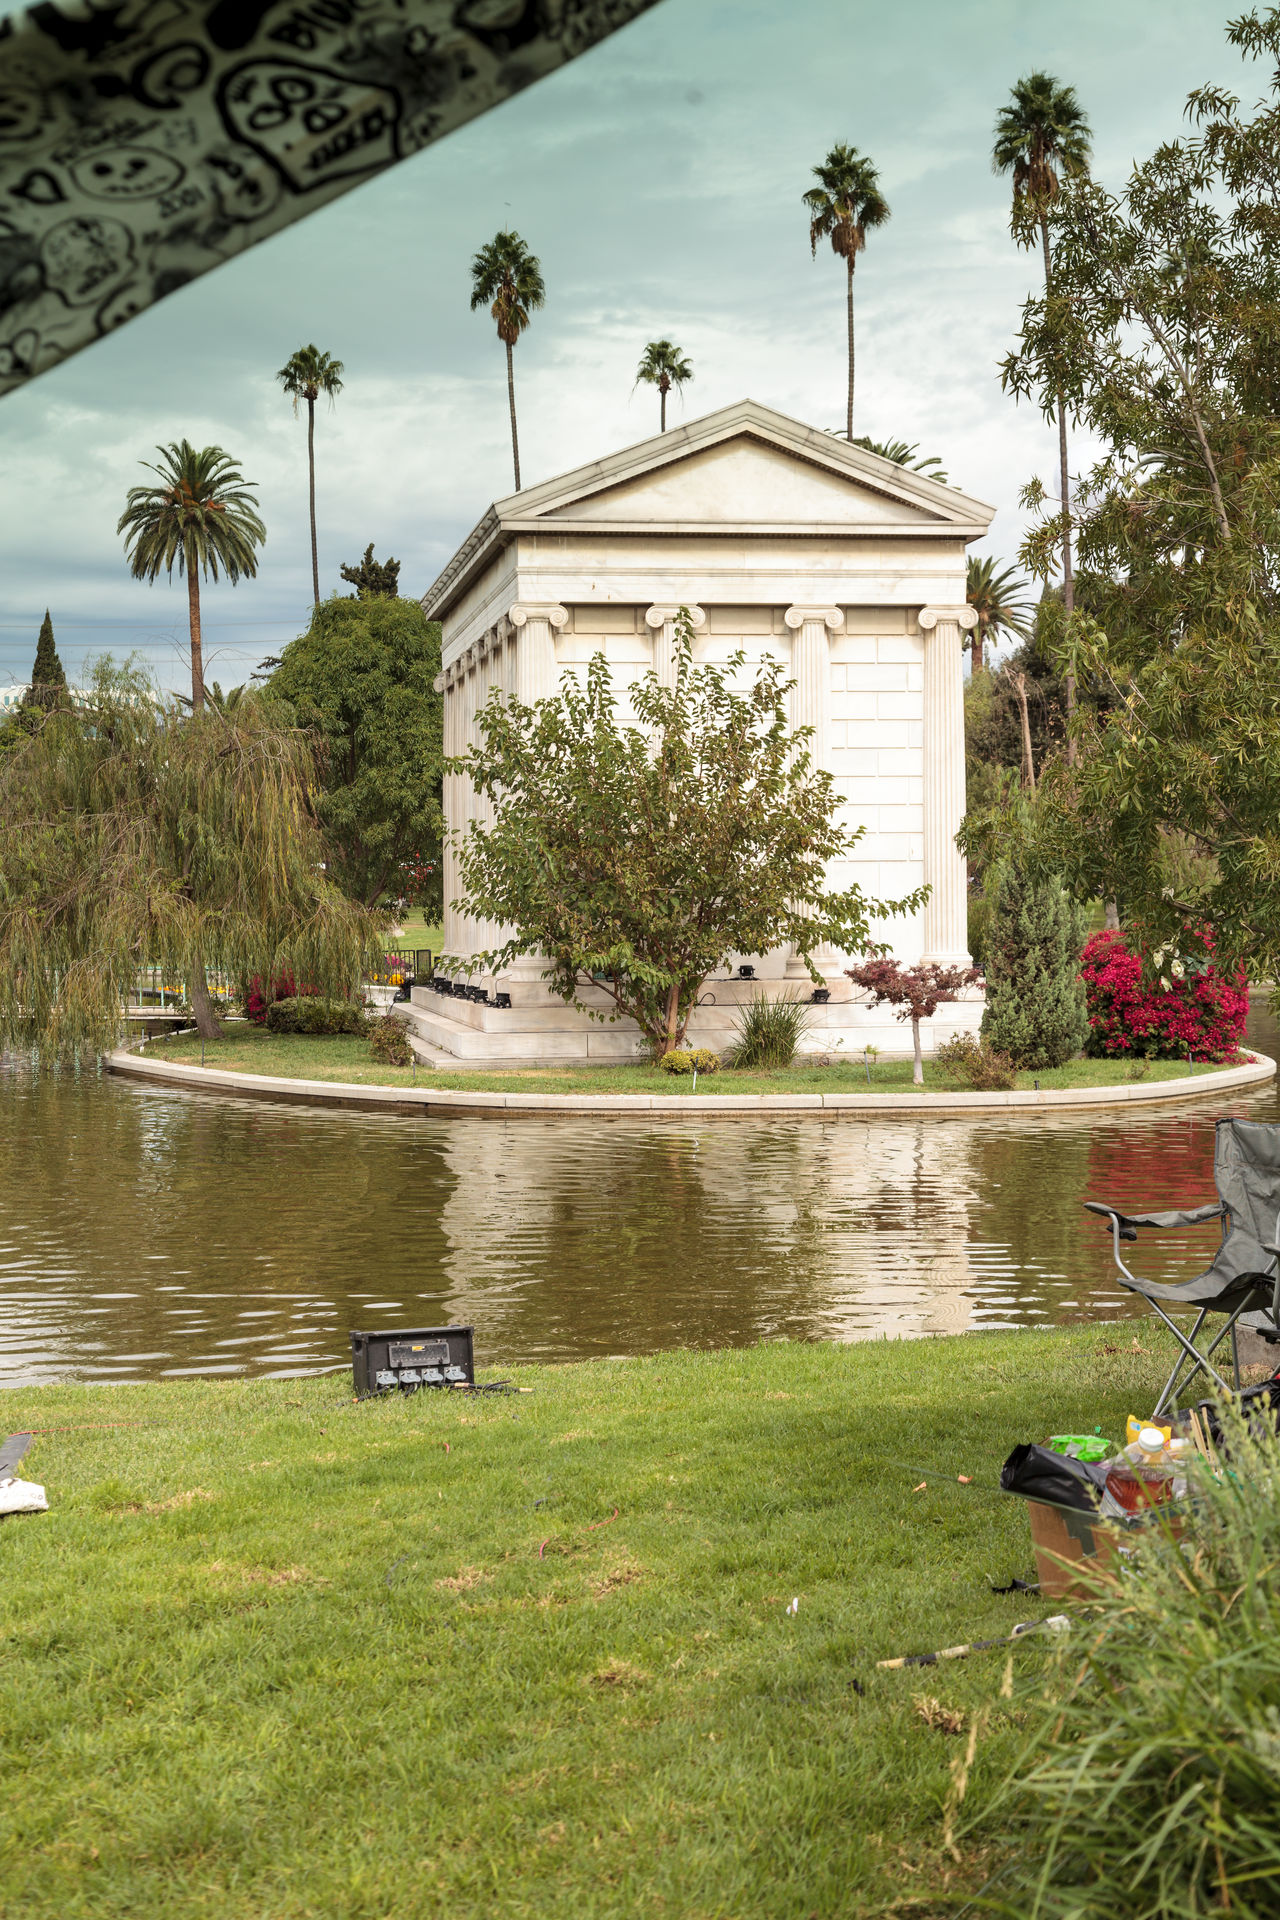 Los Angeles, CA, USA - October 29, 2016: Grounds of the Hollywood Forever Cemeteray during Dia de los Muertos, Day of the dead, in Los Angeles. Editorial use only. All Saints Day Cemetery Commemorate Day Of The Dead Death Dia De Los Muertos Garden Grave Hollywood Forever Cemetery Los Angeles, California Mausoleum Park